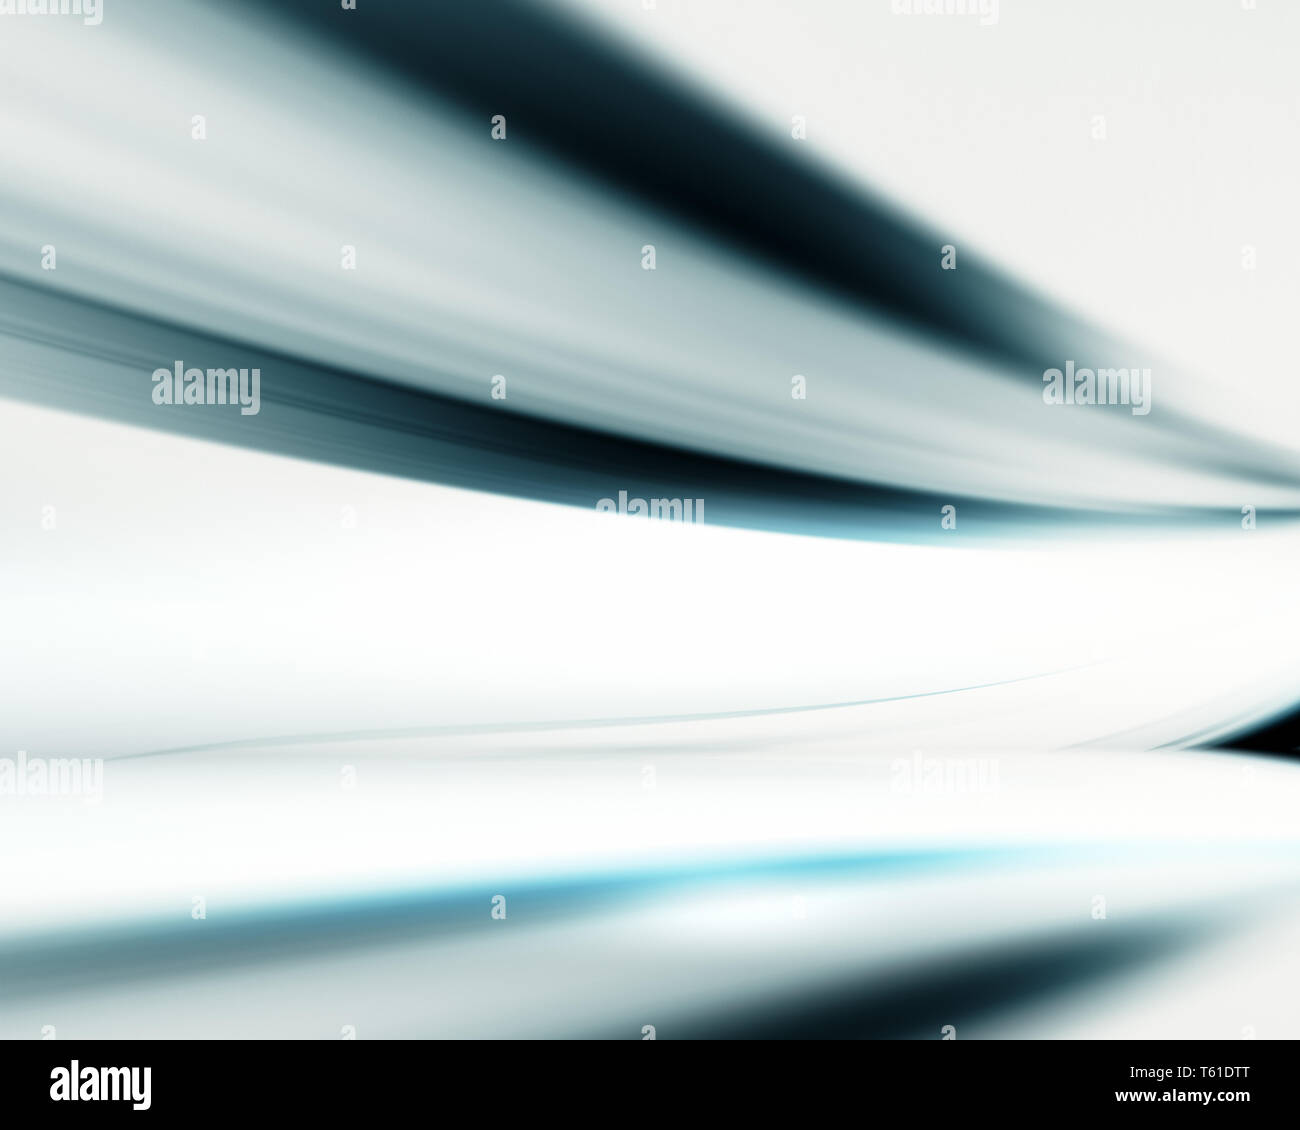 Room reflections motion blur futuristic background - Stock Image